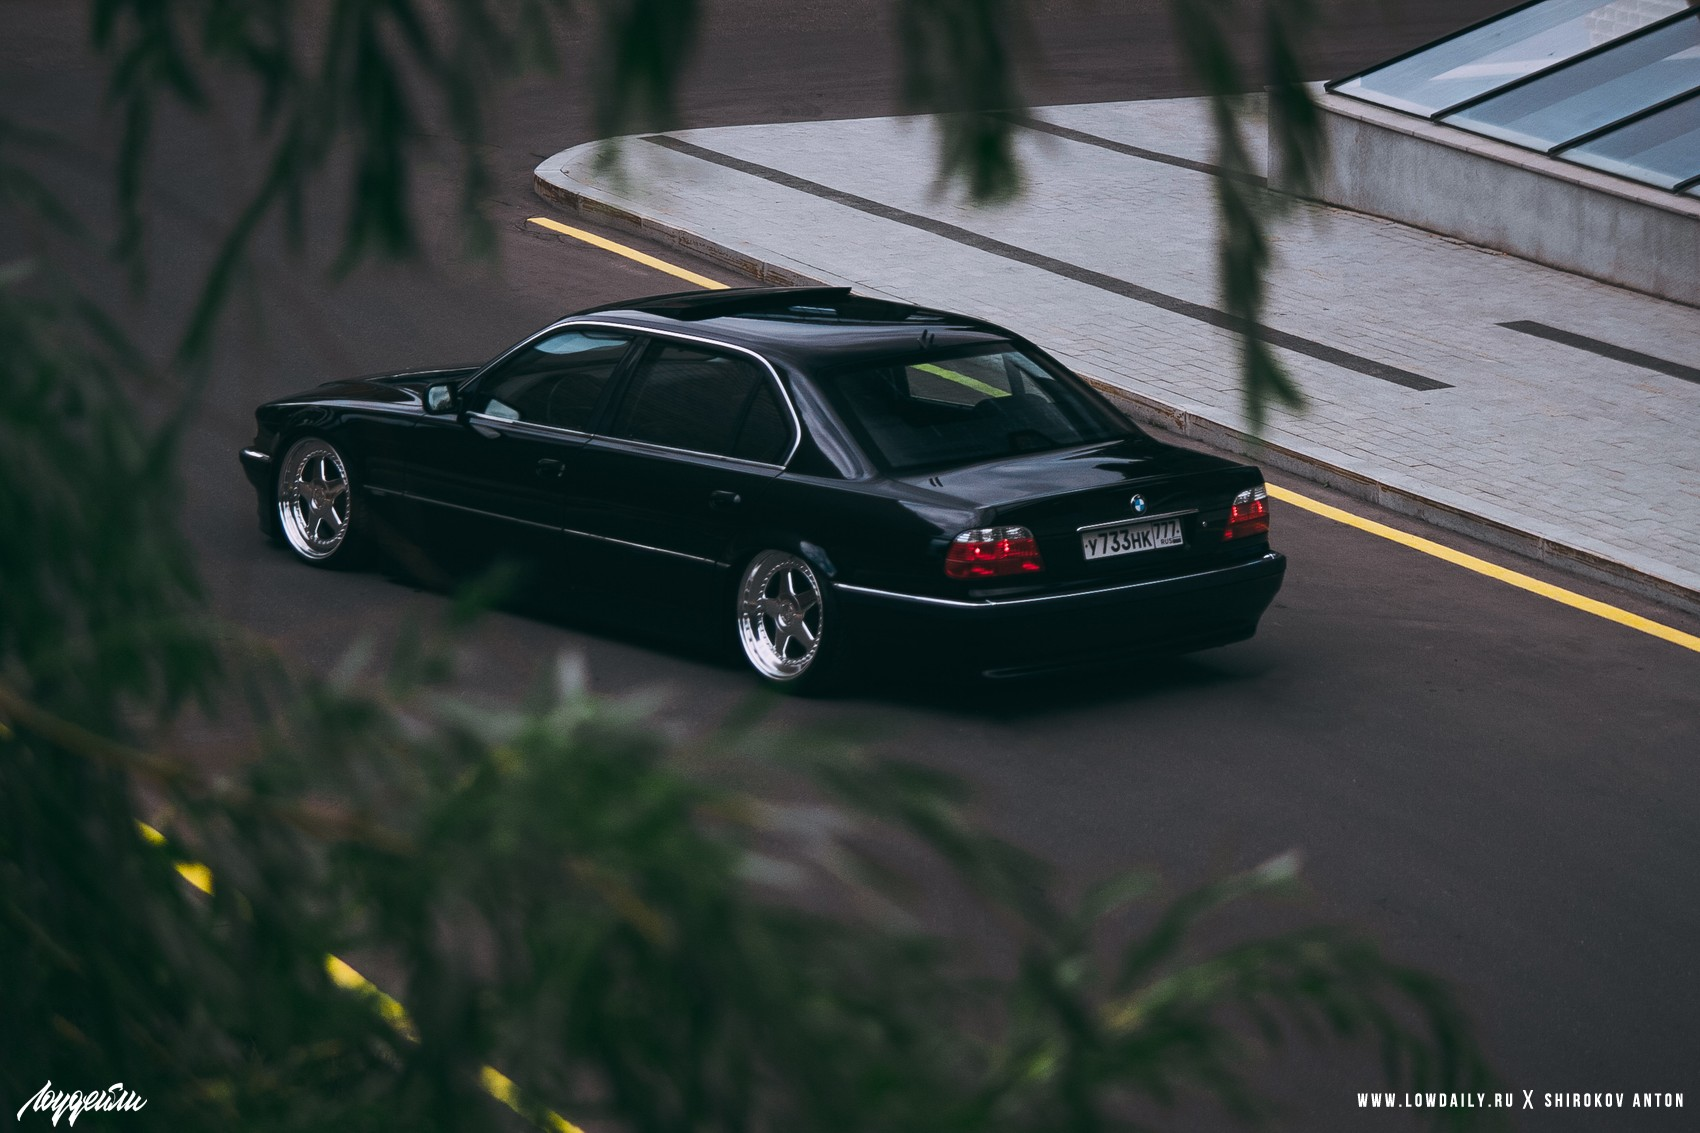 BMW E38 Lowdaily _MG_6987